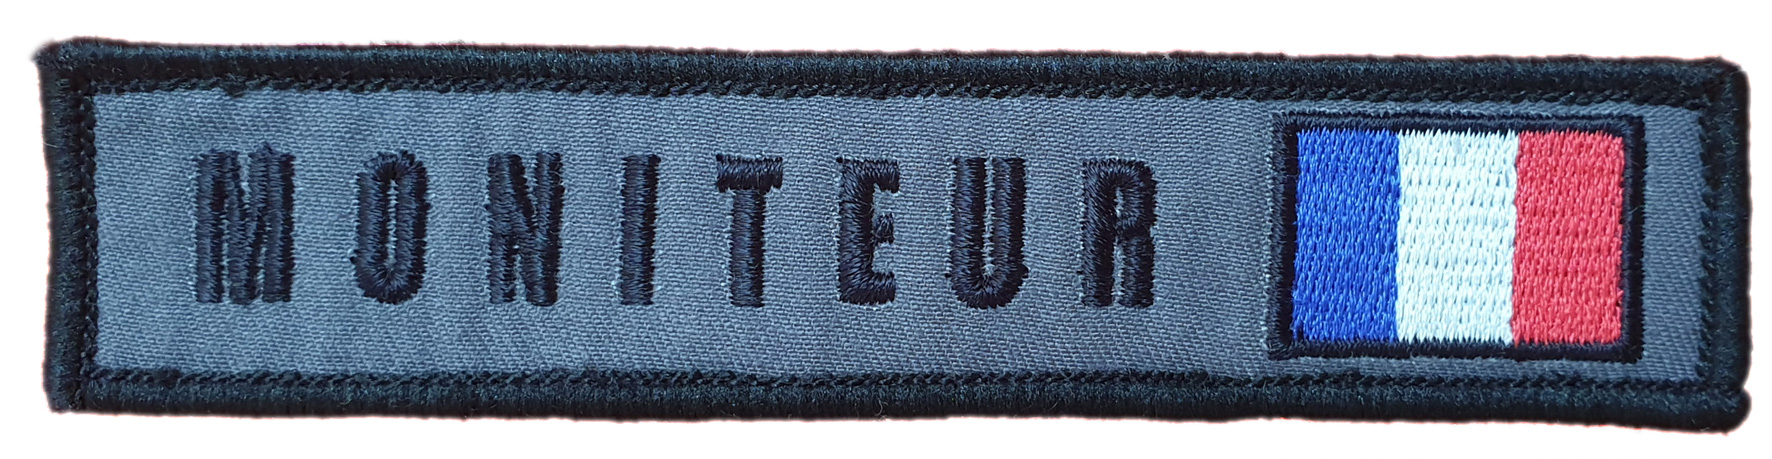 Patch brodé Moniteur